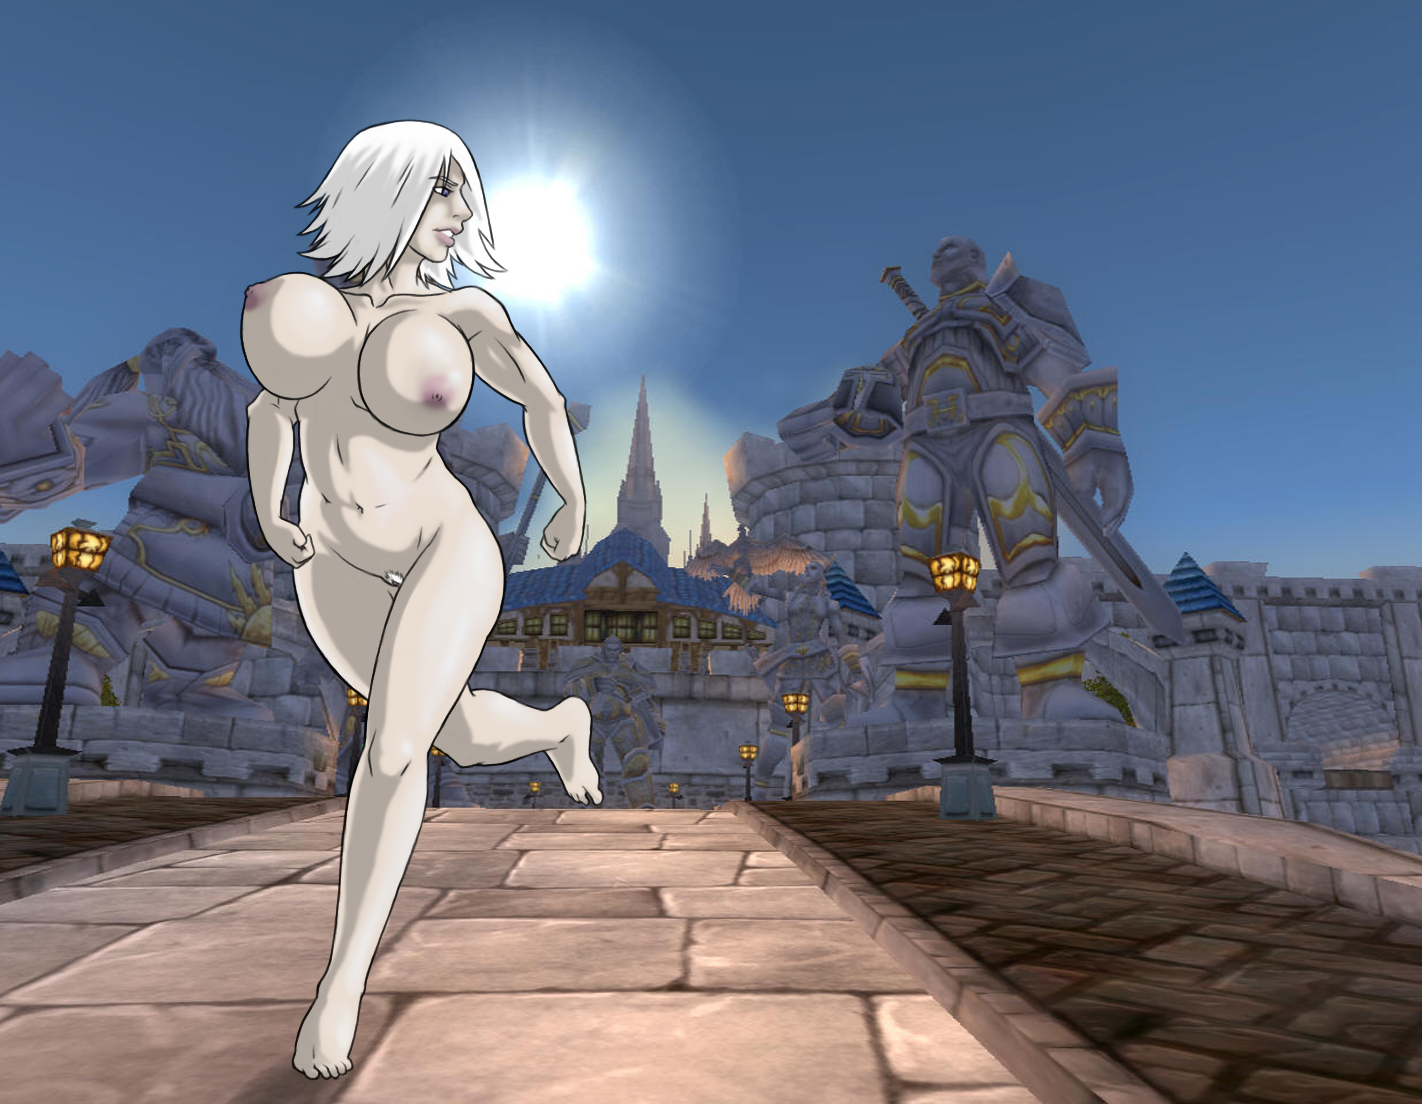 World of warcraft snowblind sex pictures nsfw video